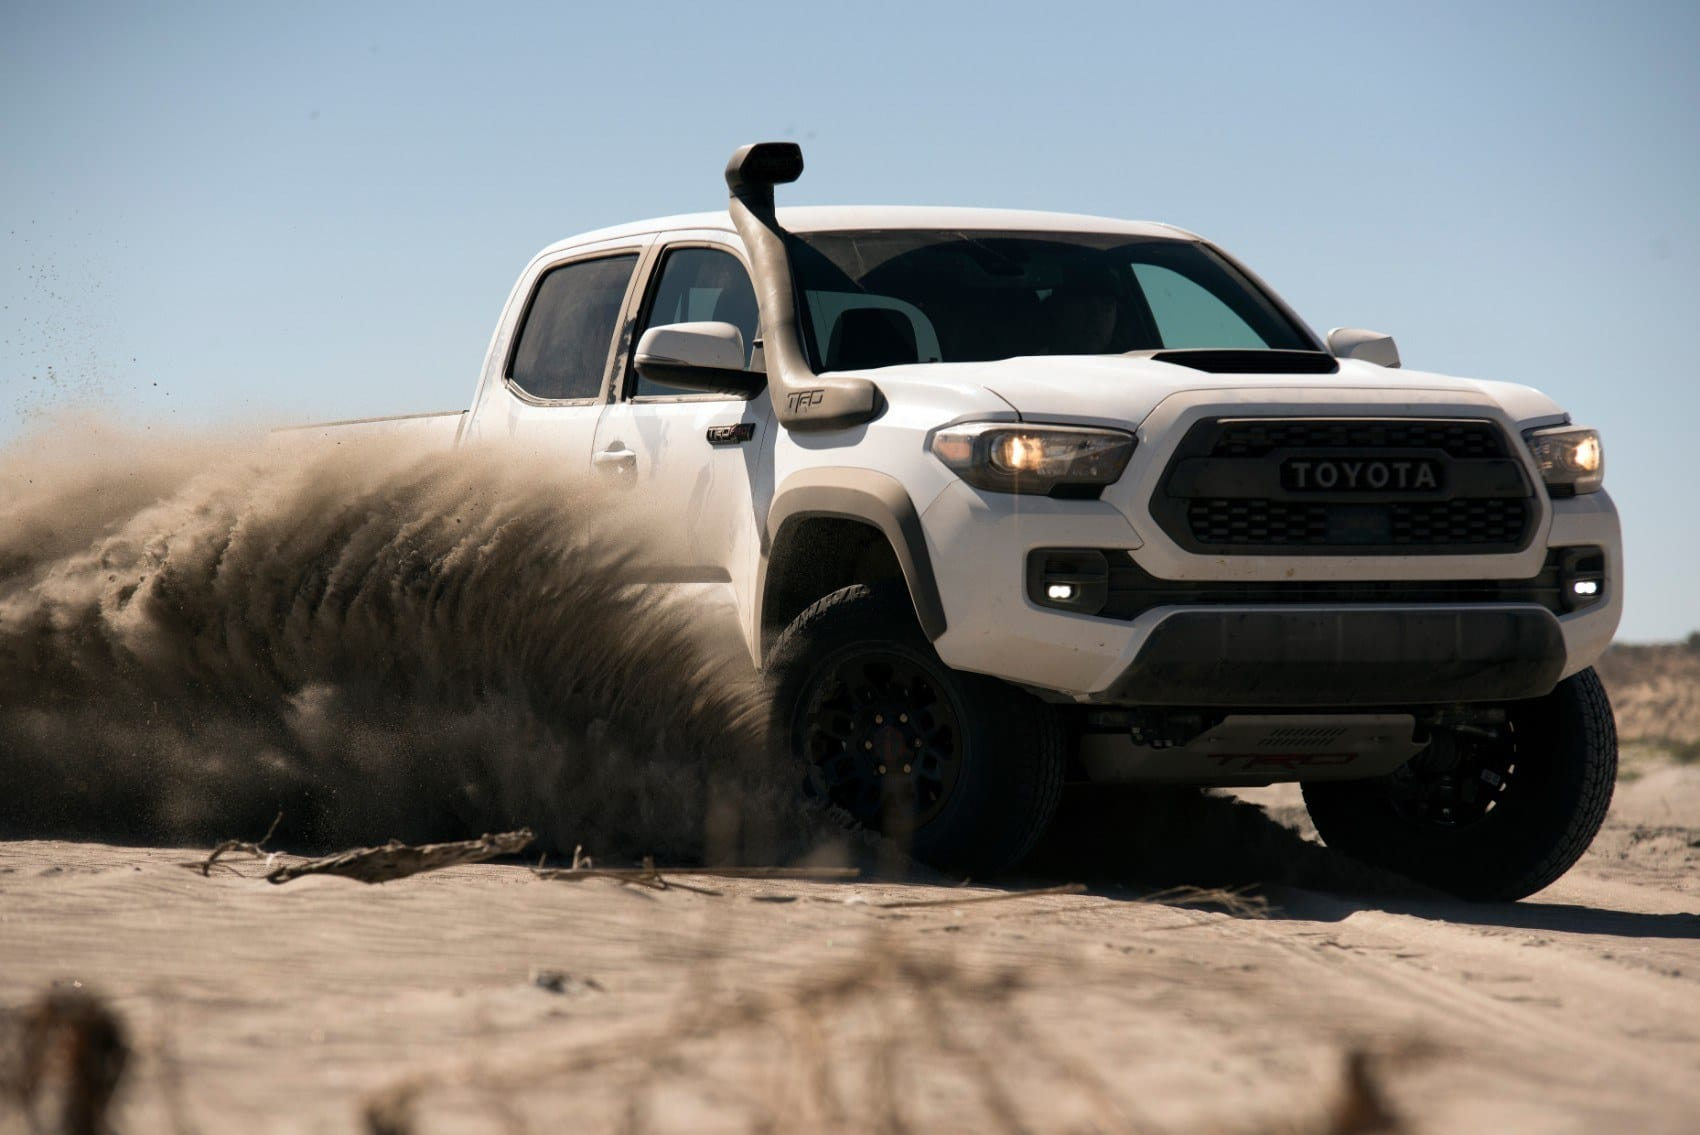 2019 Toyota Tacoma TRD Pro Review: Perfect For The Weekend